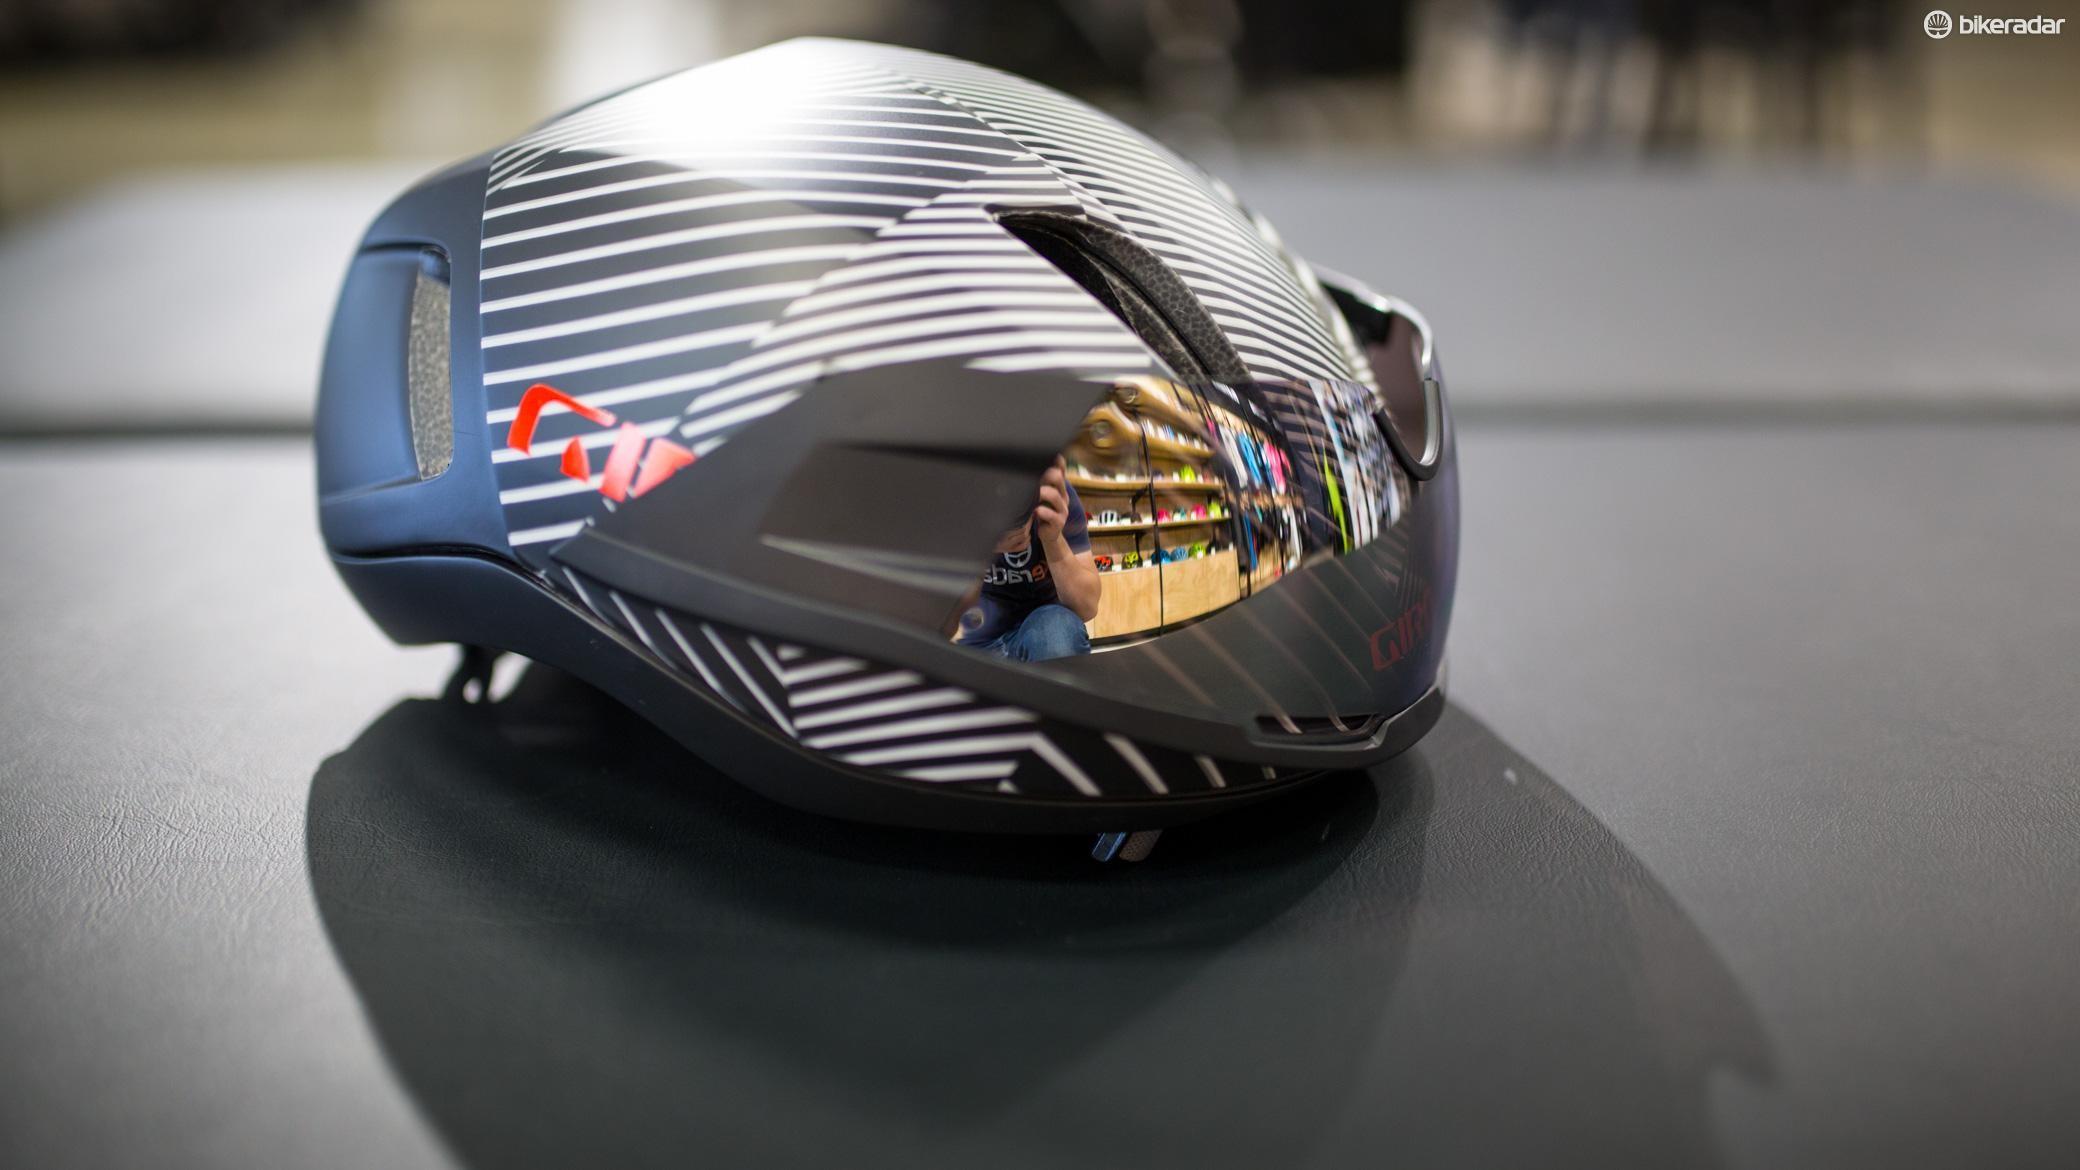 Like Giro's Aerohead TT lid, the Vanquish shield can be magnetically stored upside down